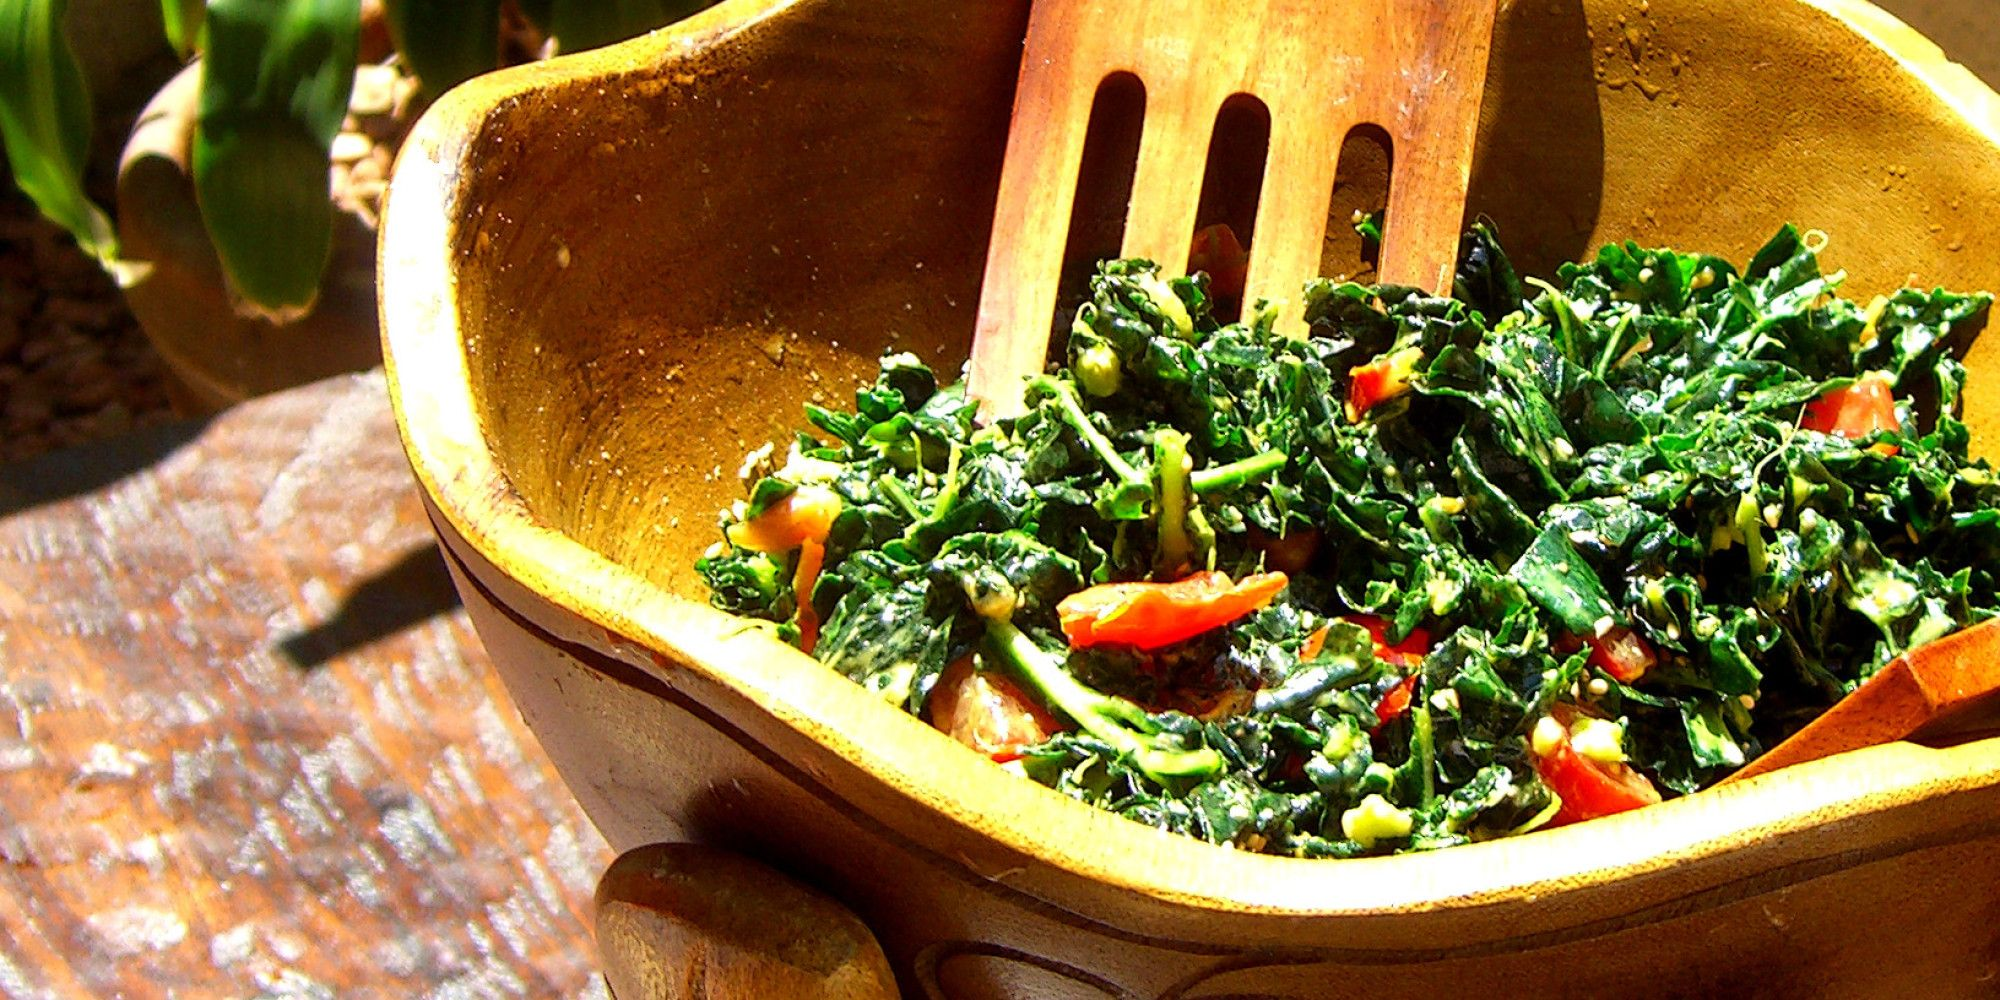 Why I'll Be Keeping My Distance From Kale - Karin Kasdin, Huffington Post  << YES!!!